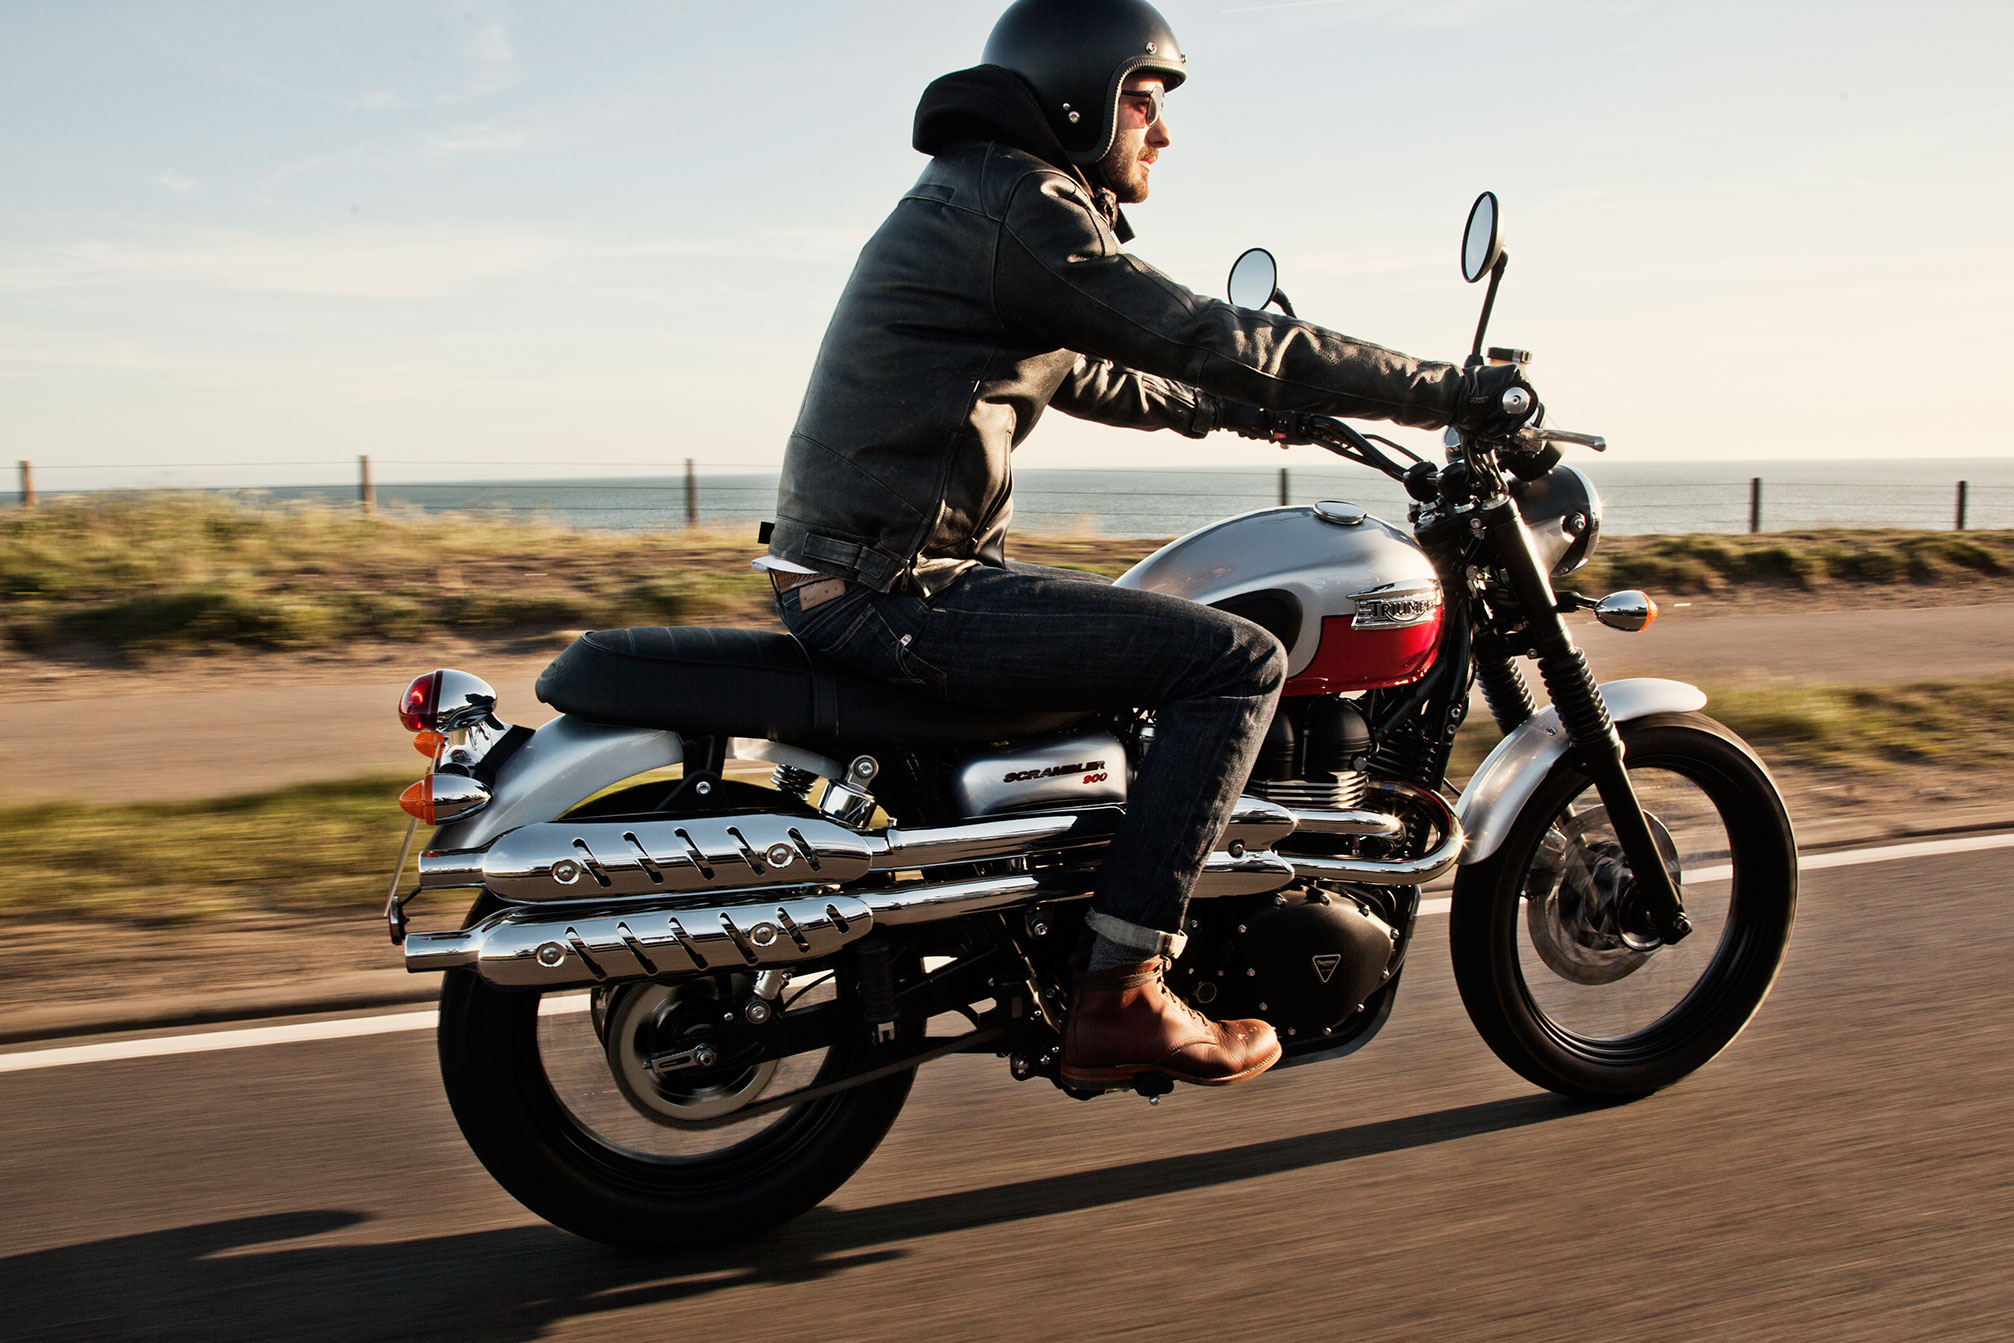 new triumph scrambler spied more variants coming bikesrepublic. Black Bedroom Furniture Sets. Home Design Ideas